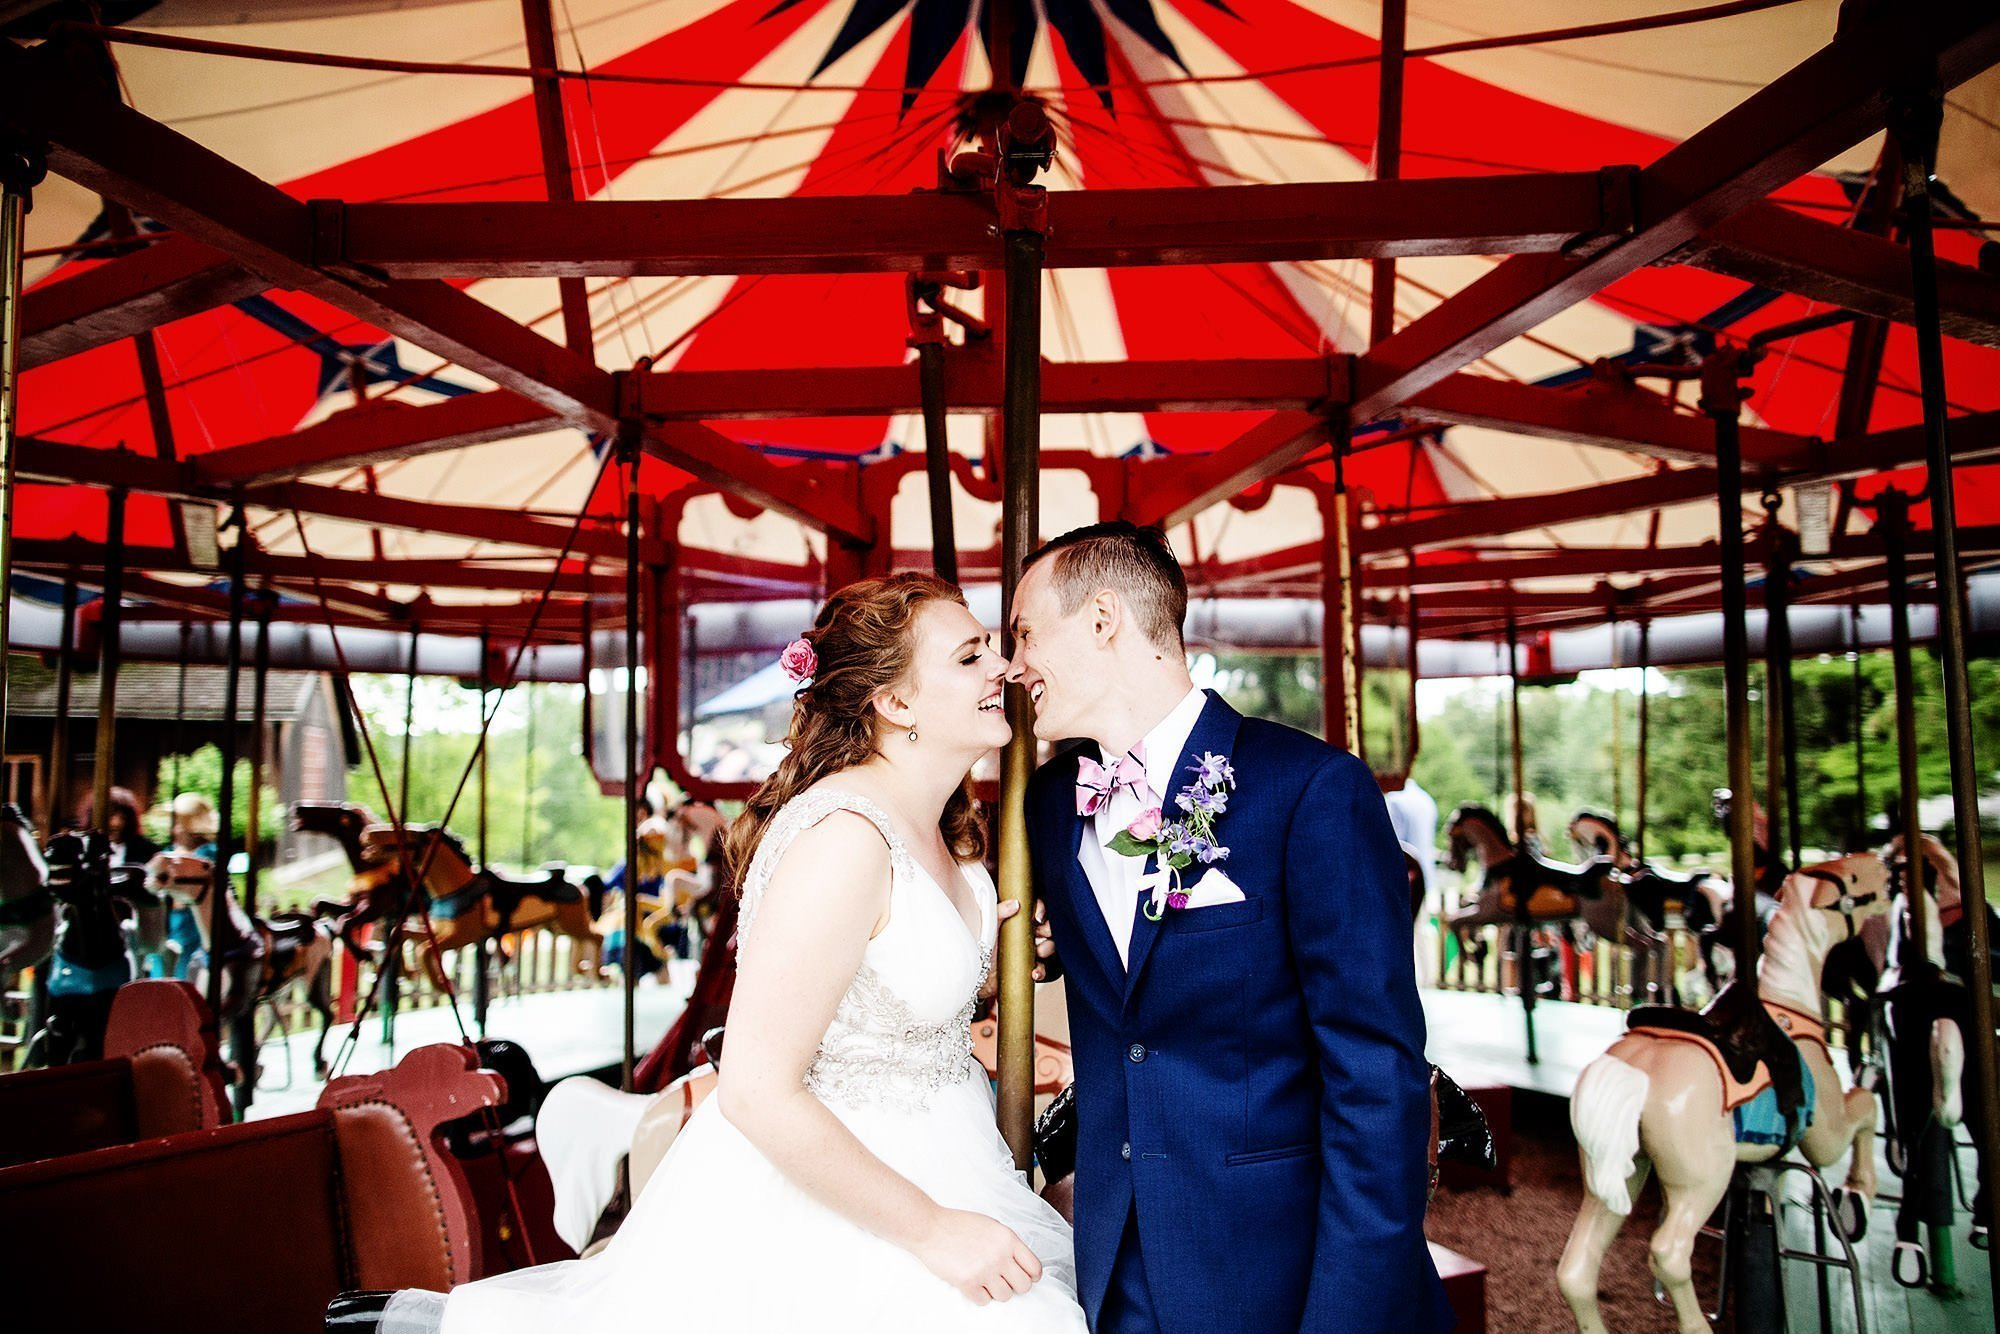 Shelburne Museum Wedding  I  The bride and groom kiss on the merry go round in Shelburne, VT.